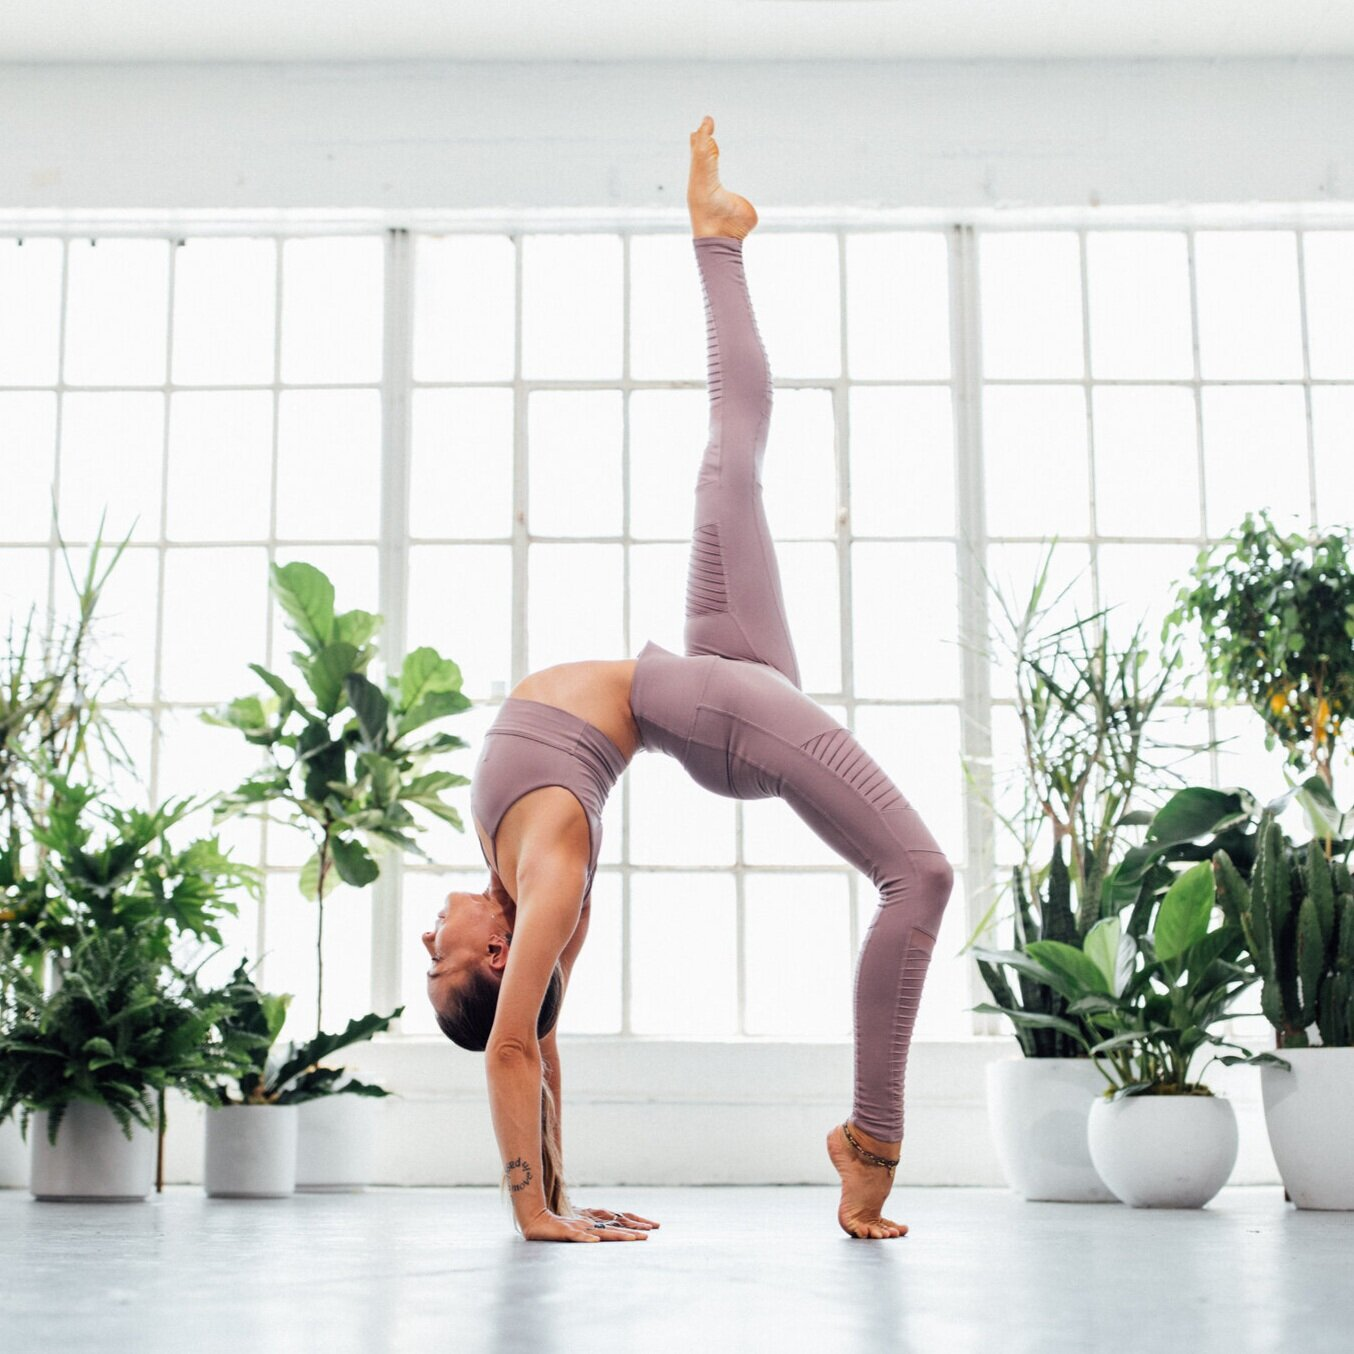 3 Wheel Pose Variations To Challenge Your Practice Alo Moves